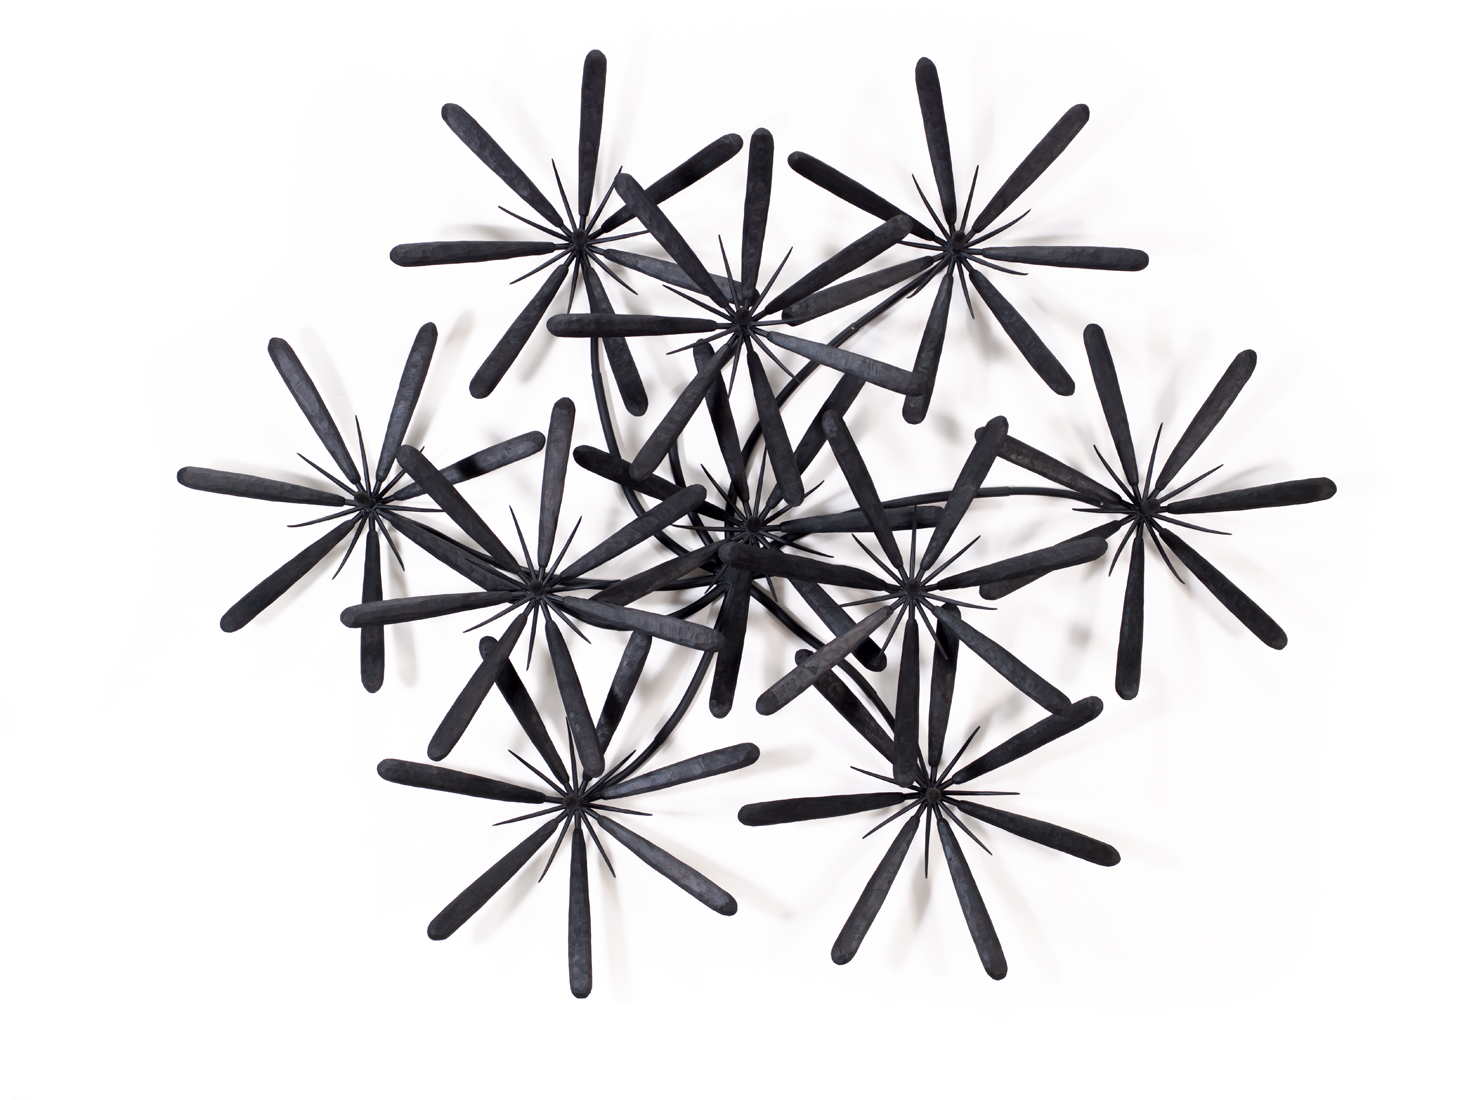 Round Tipped Black Raw Wall Flower, 2013